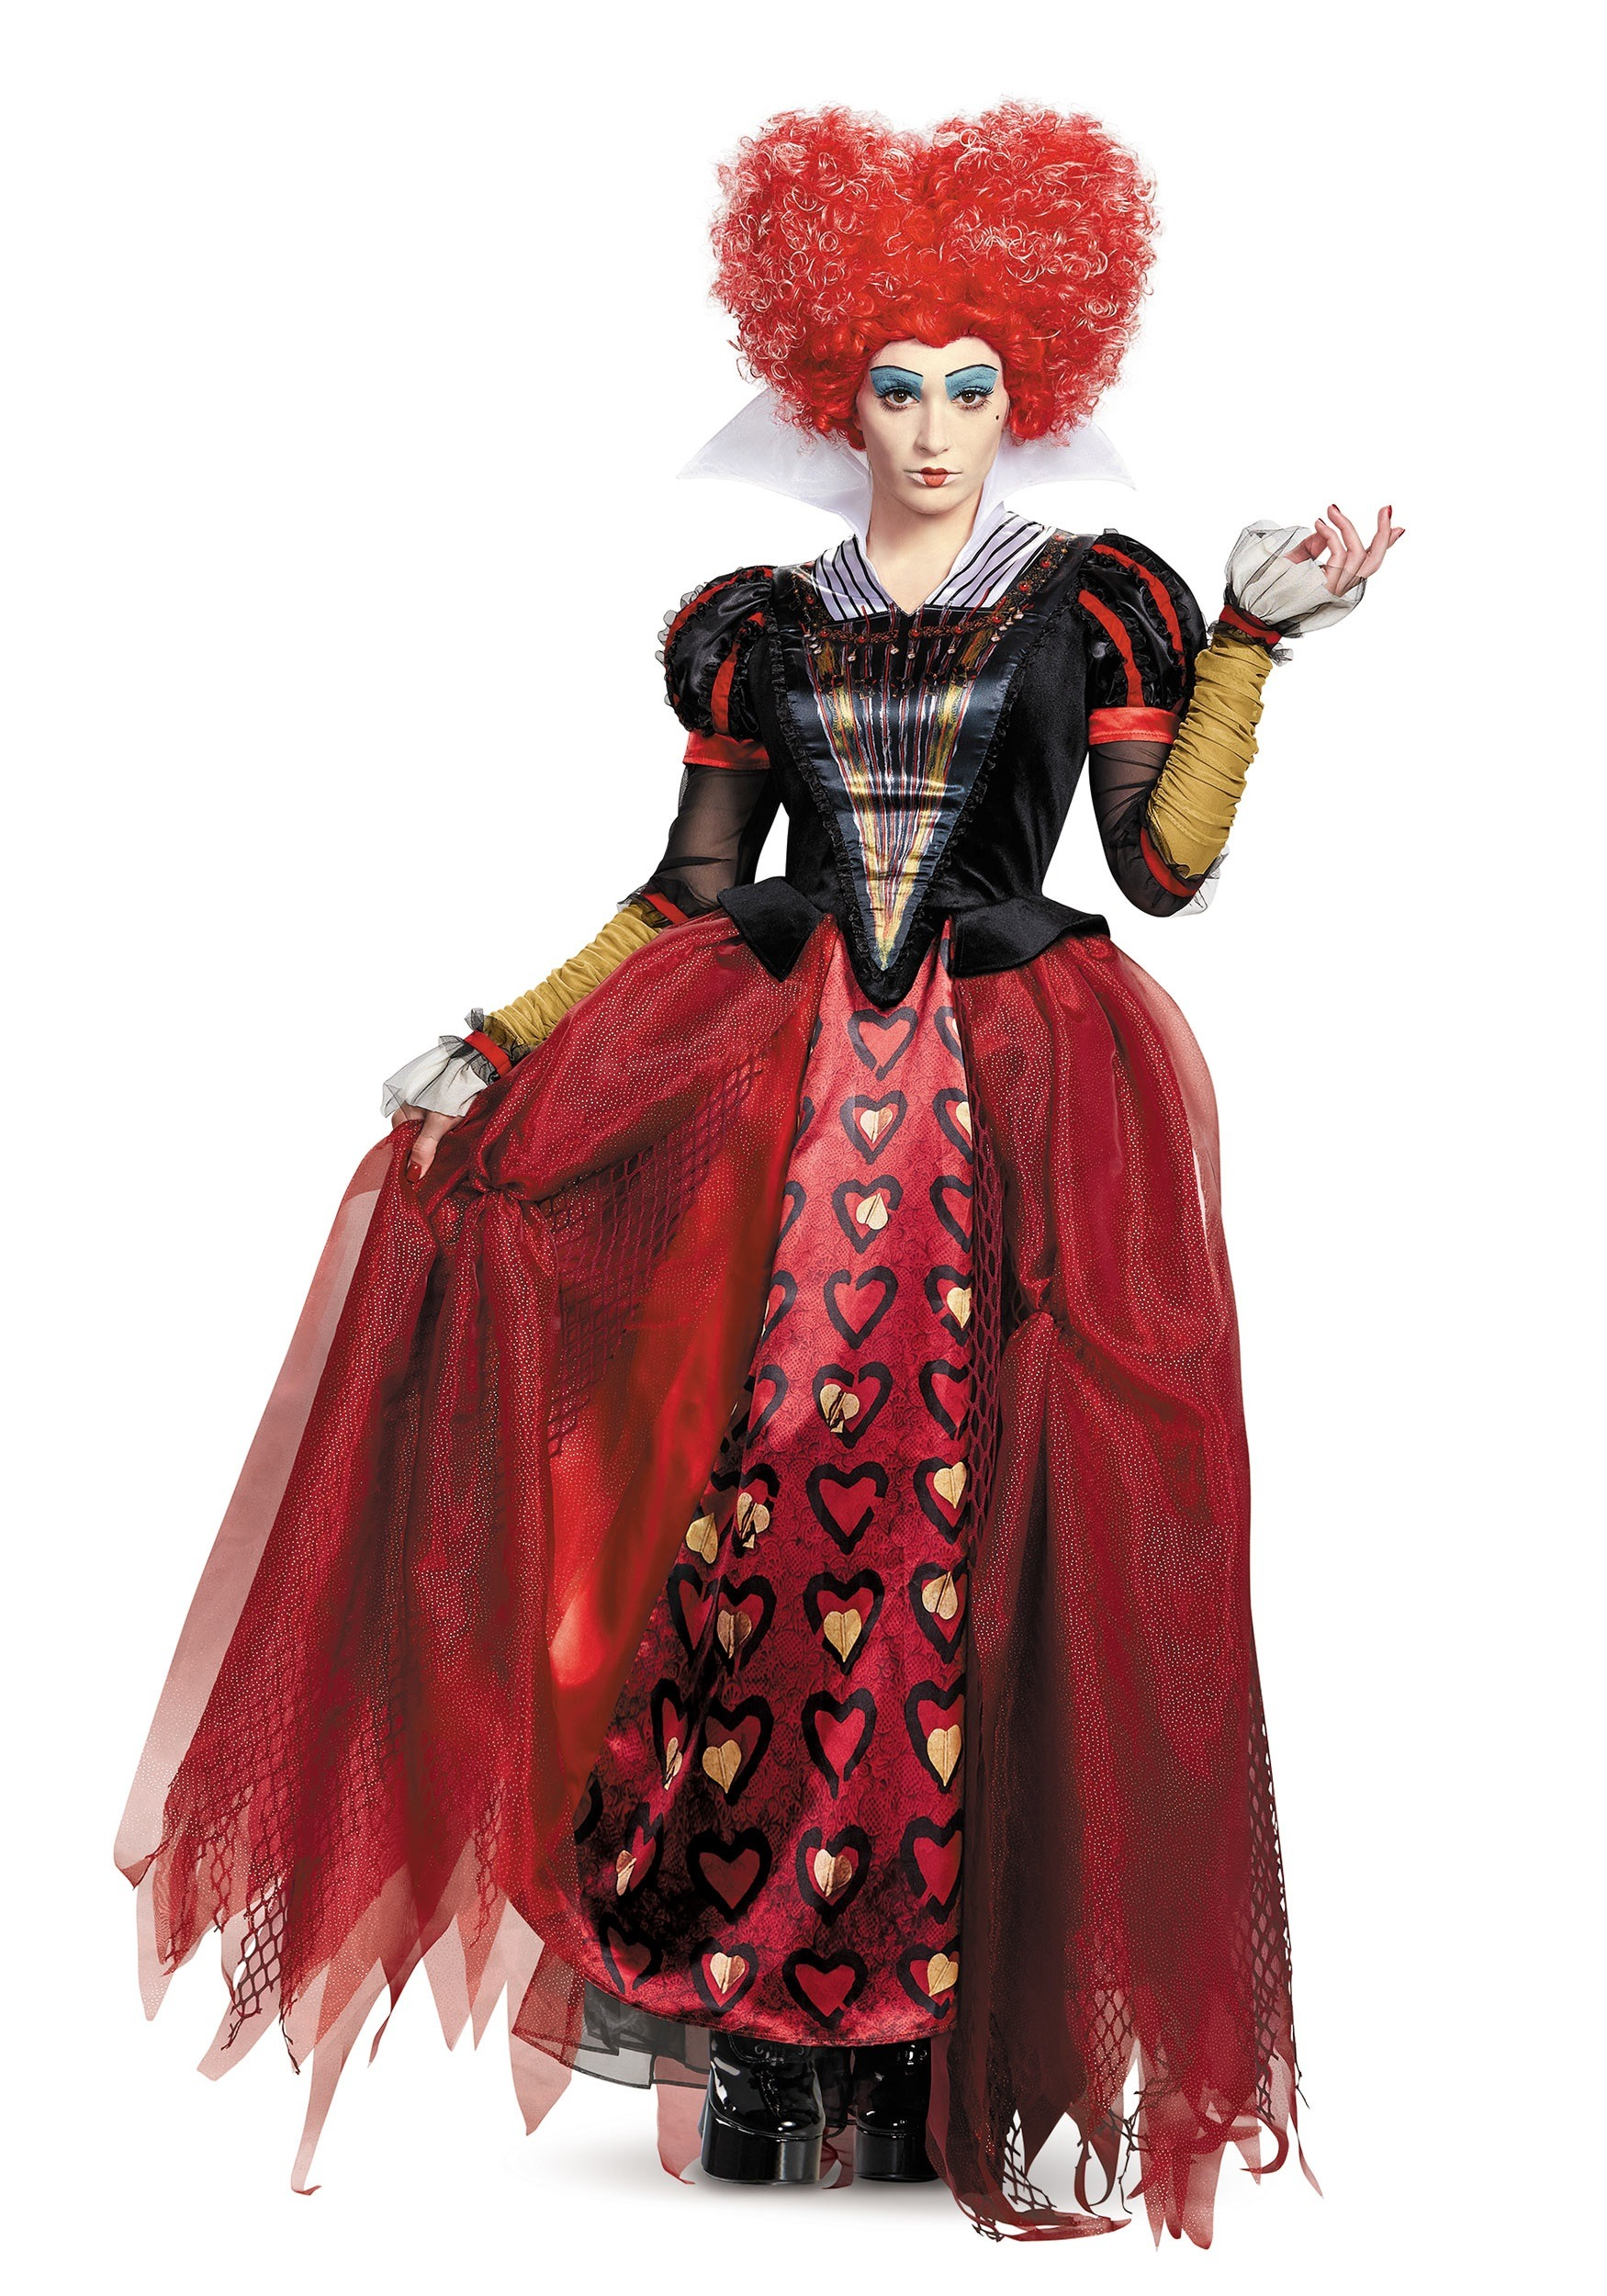 queen of hearts costumes - plus size, child, adult queen of heart